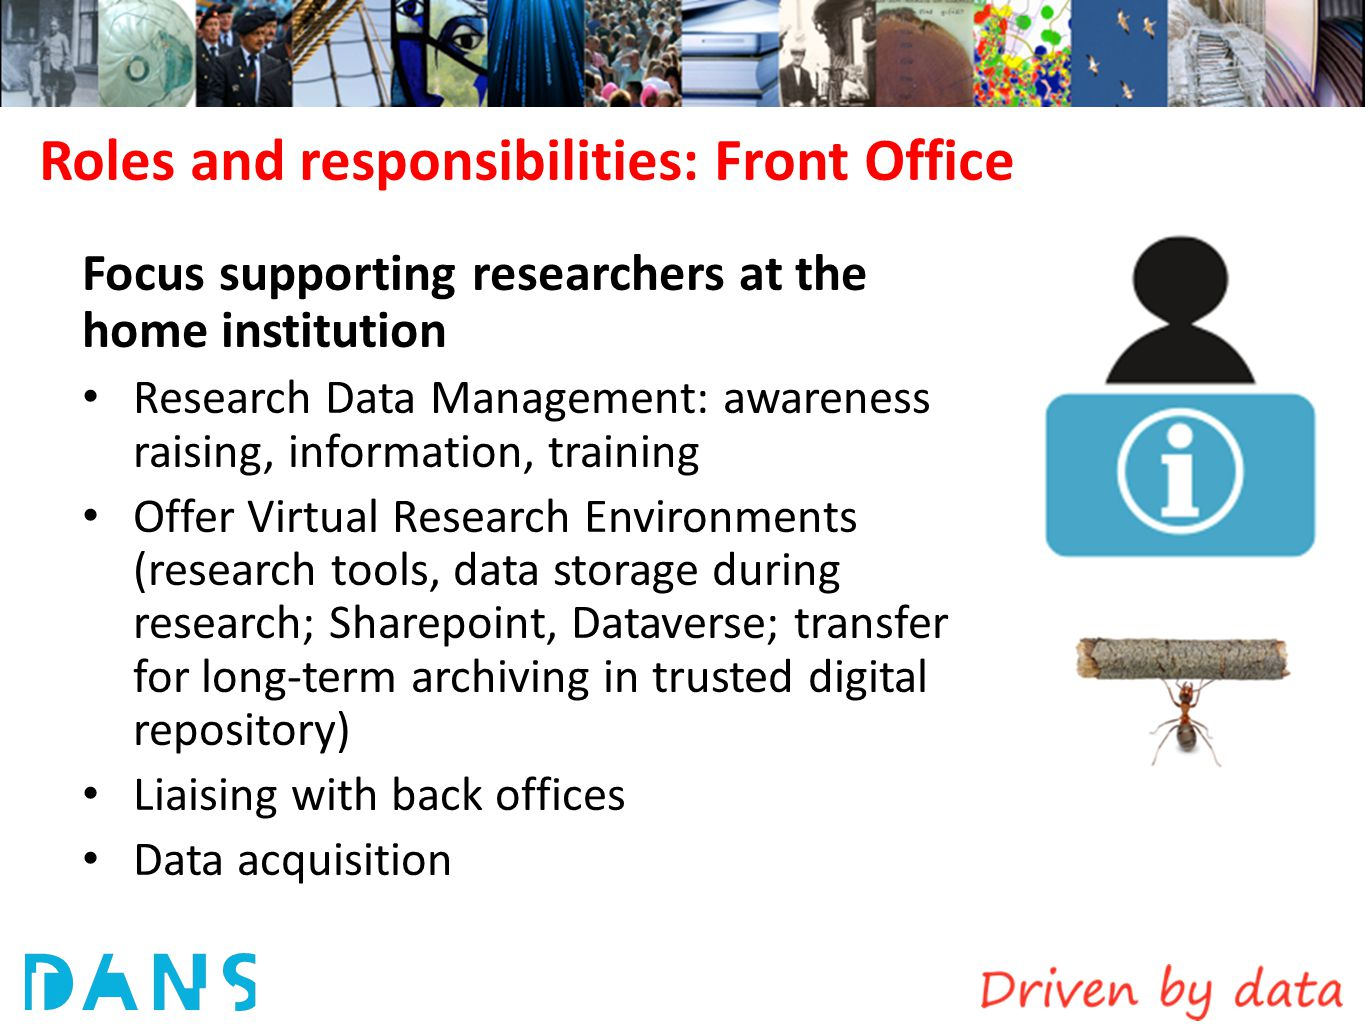 Roles and responsibilities: Front Office